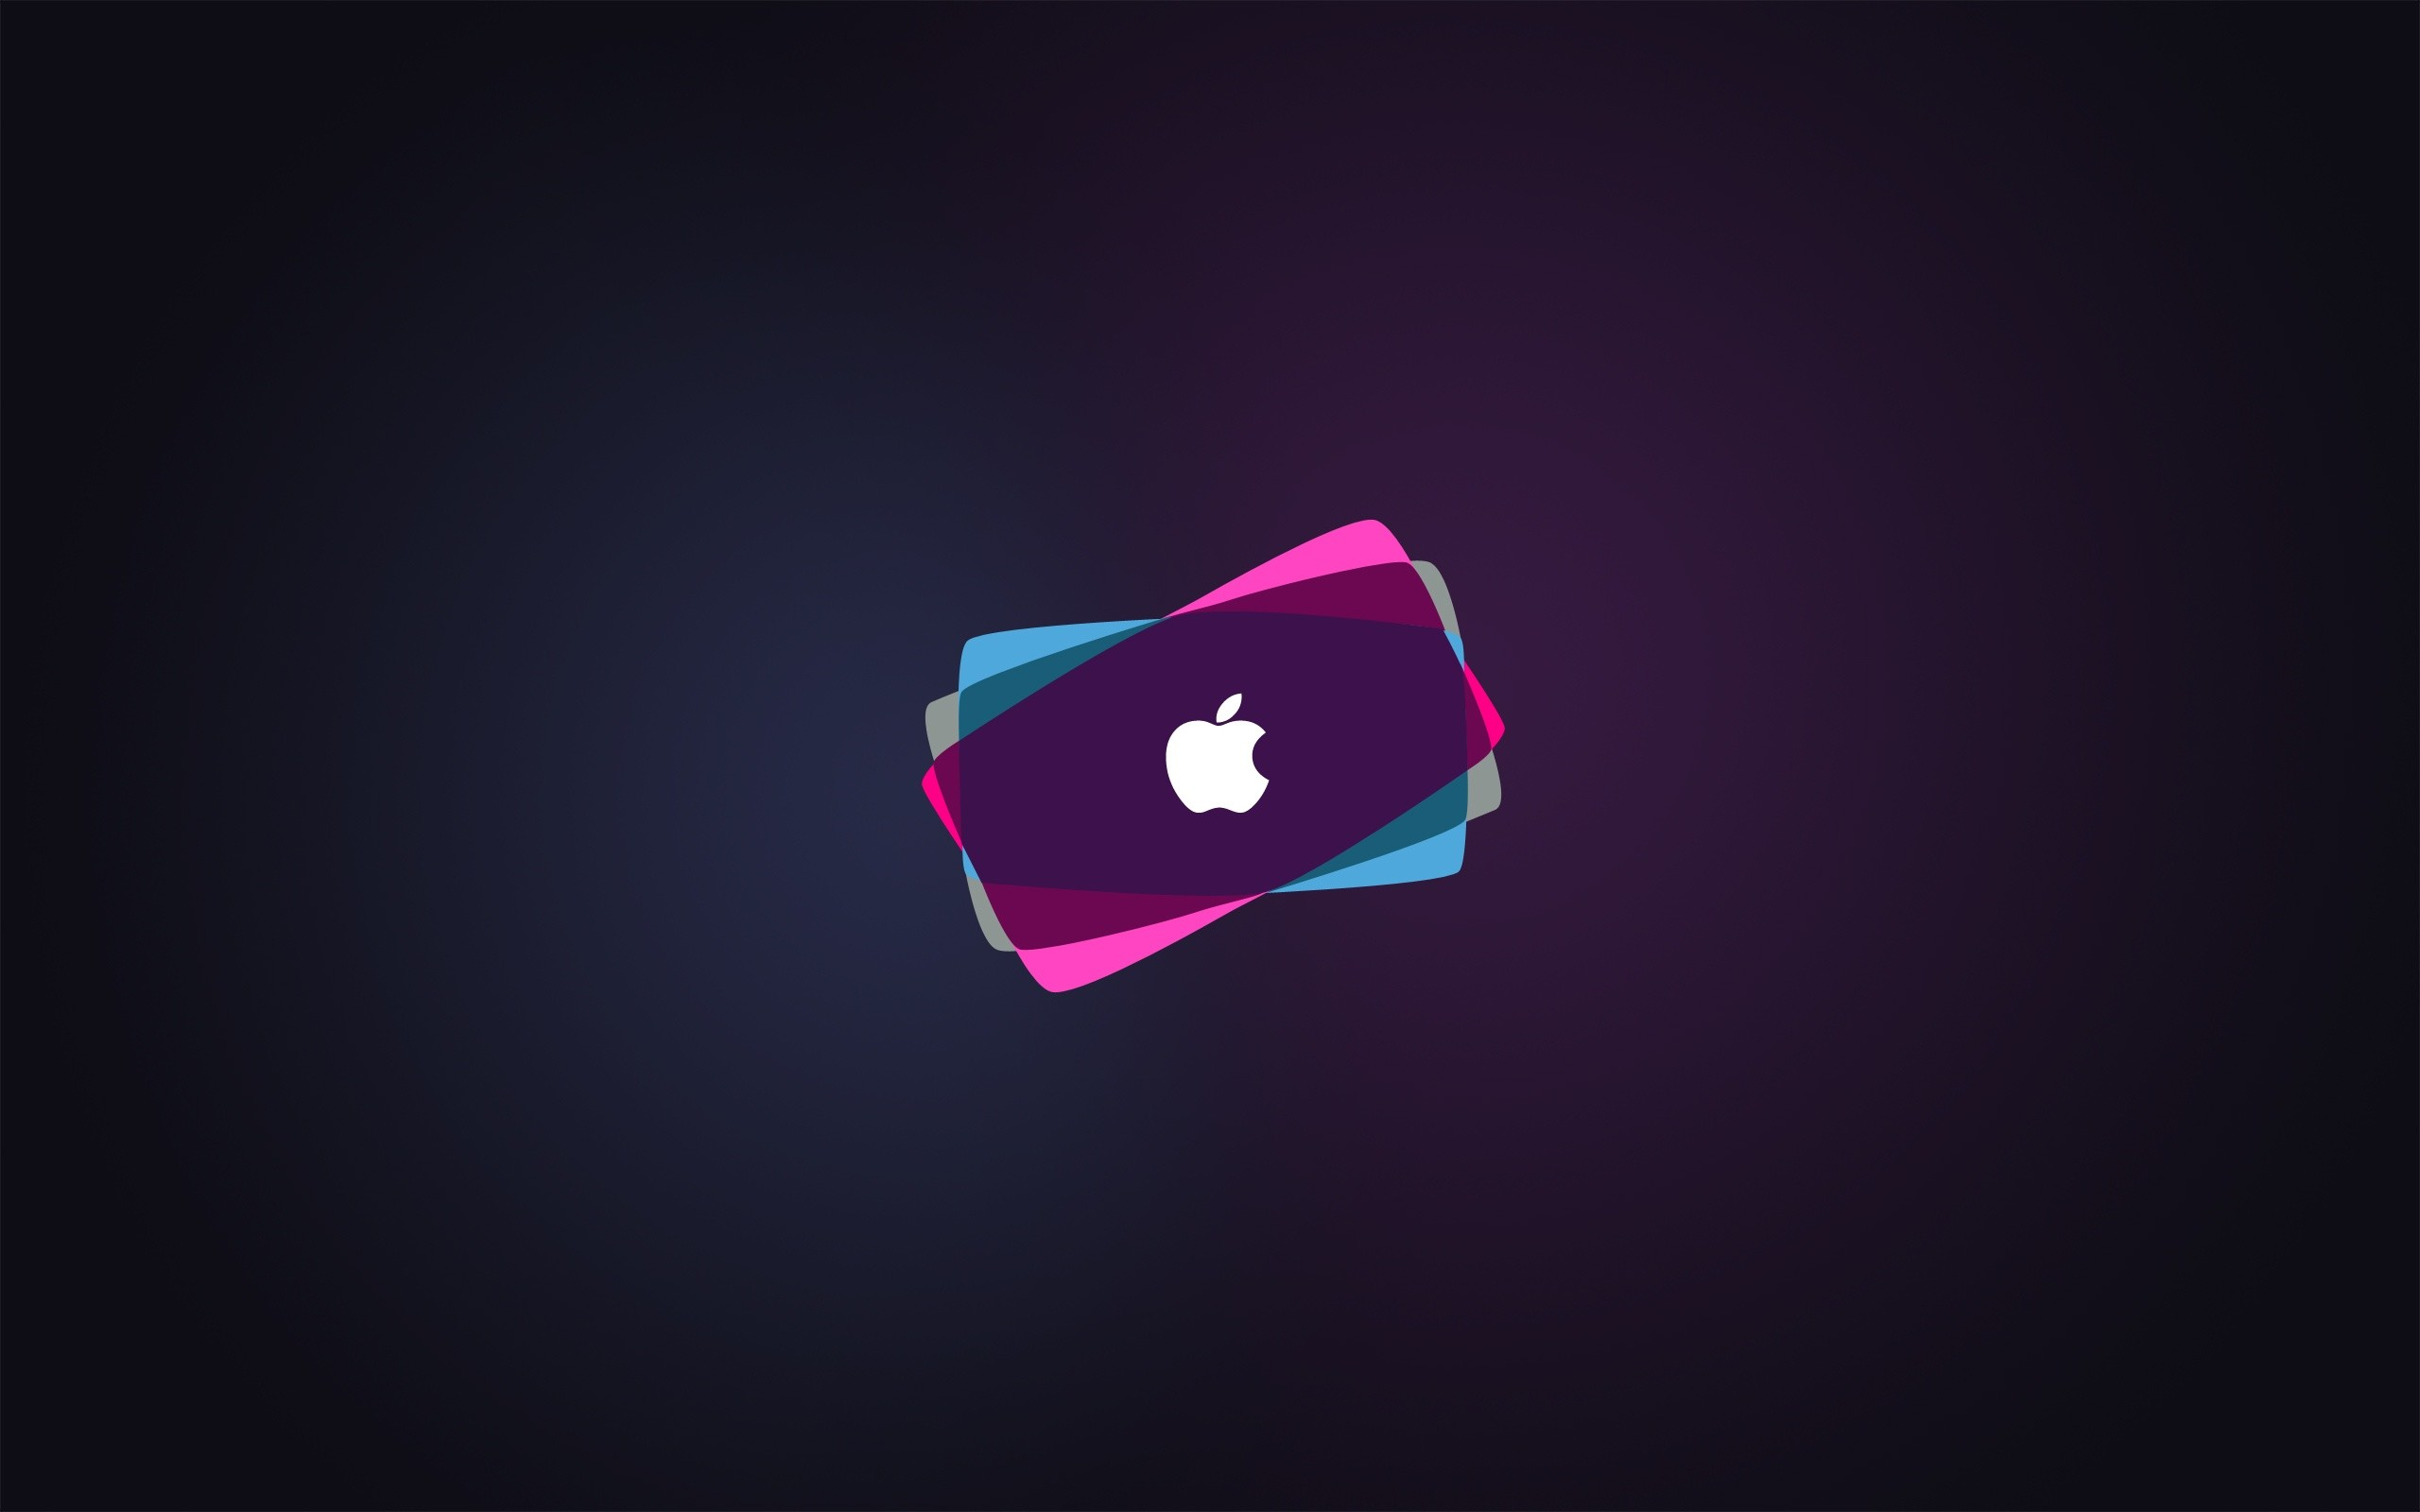 Apple Wallpaper Hd 1080p Wallpapertag